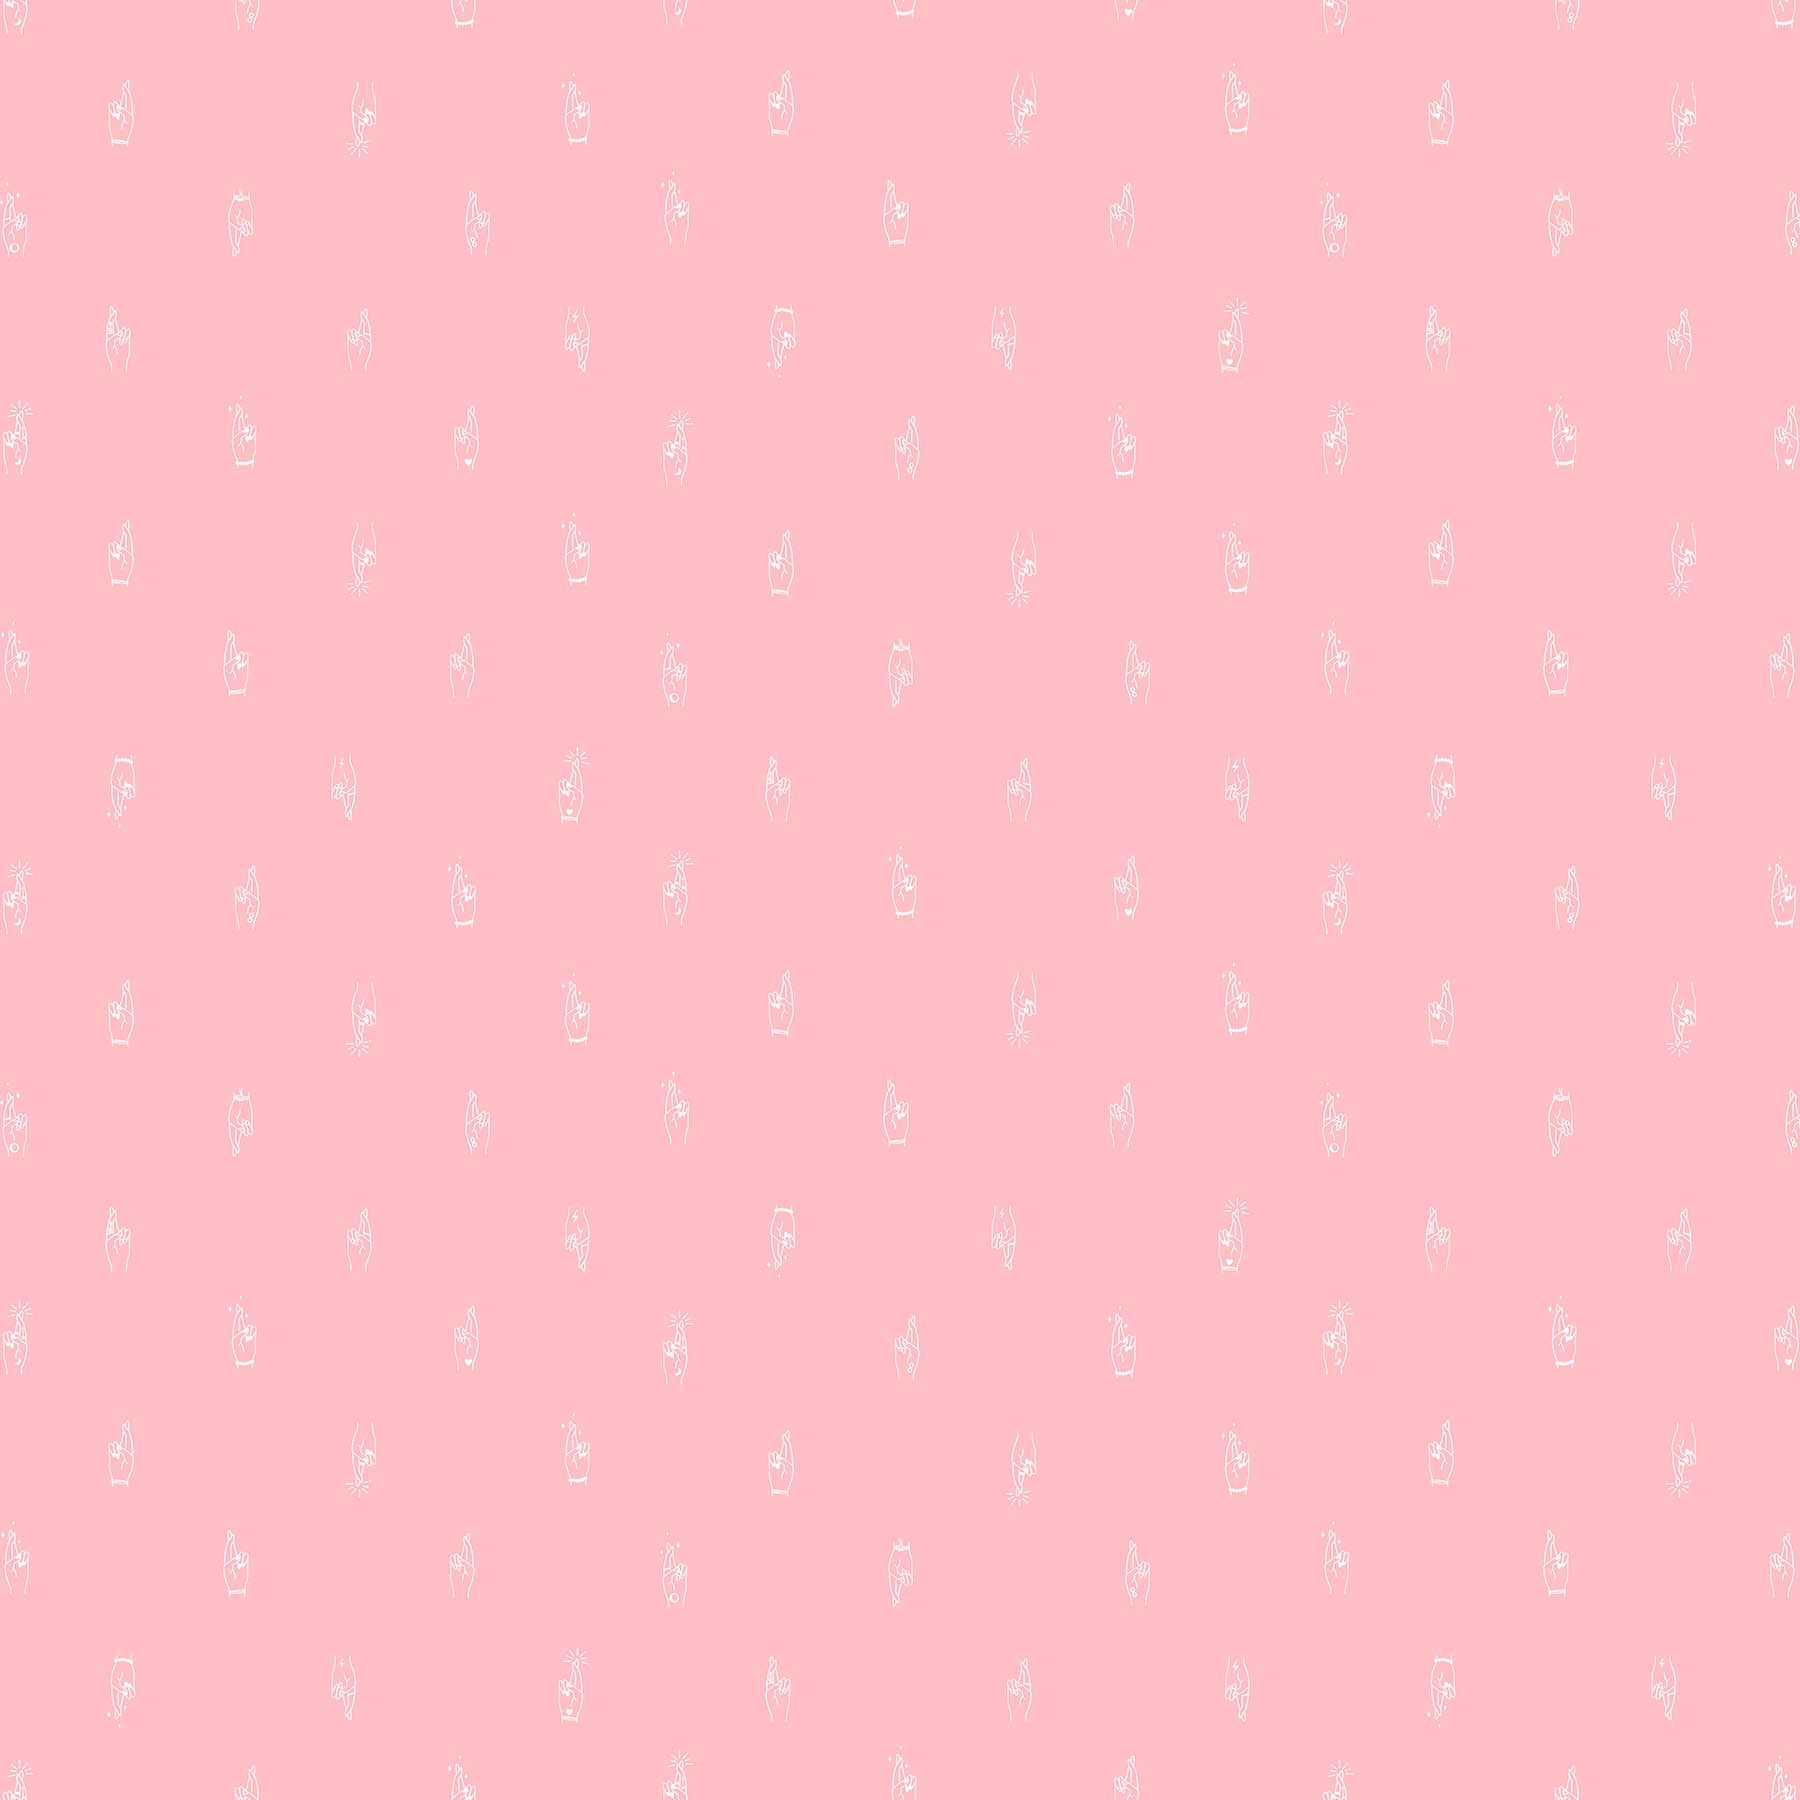 Lucky Charms - Crossed Fingers Fabric - Trapunto